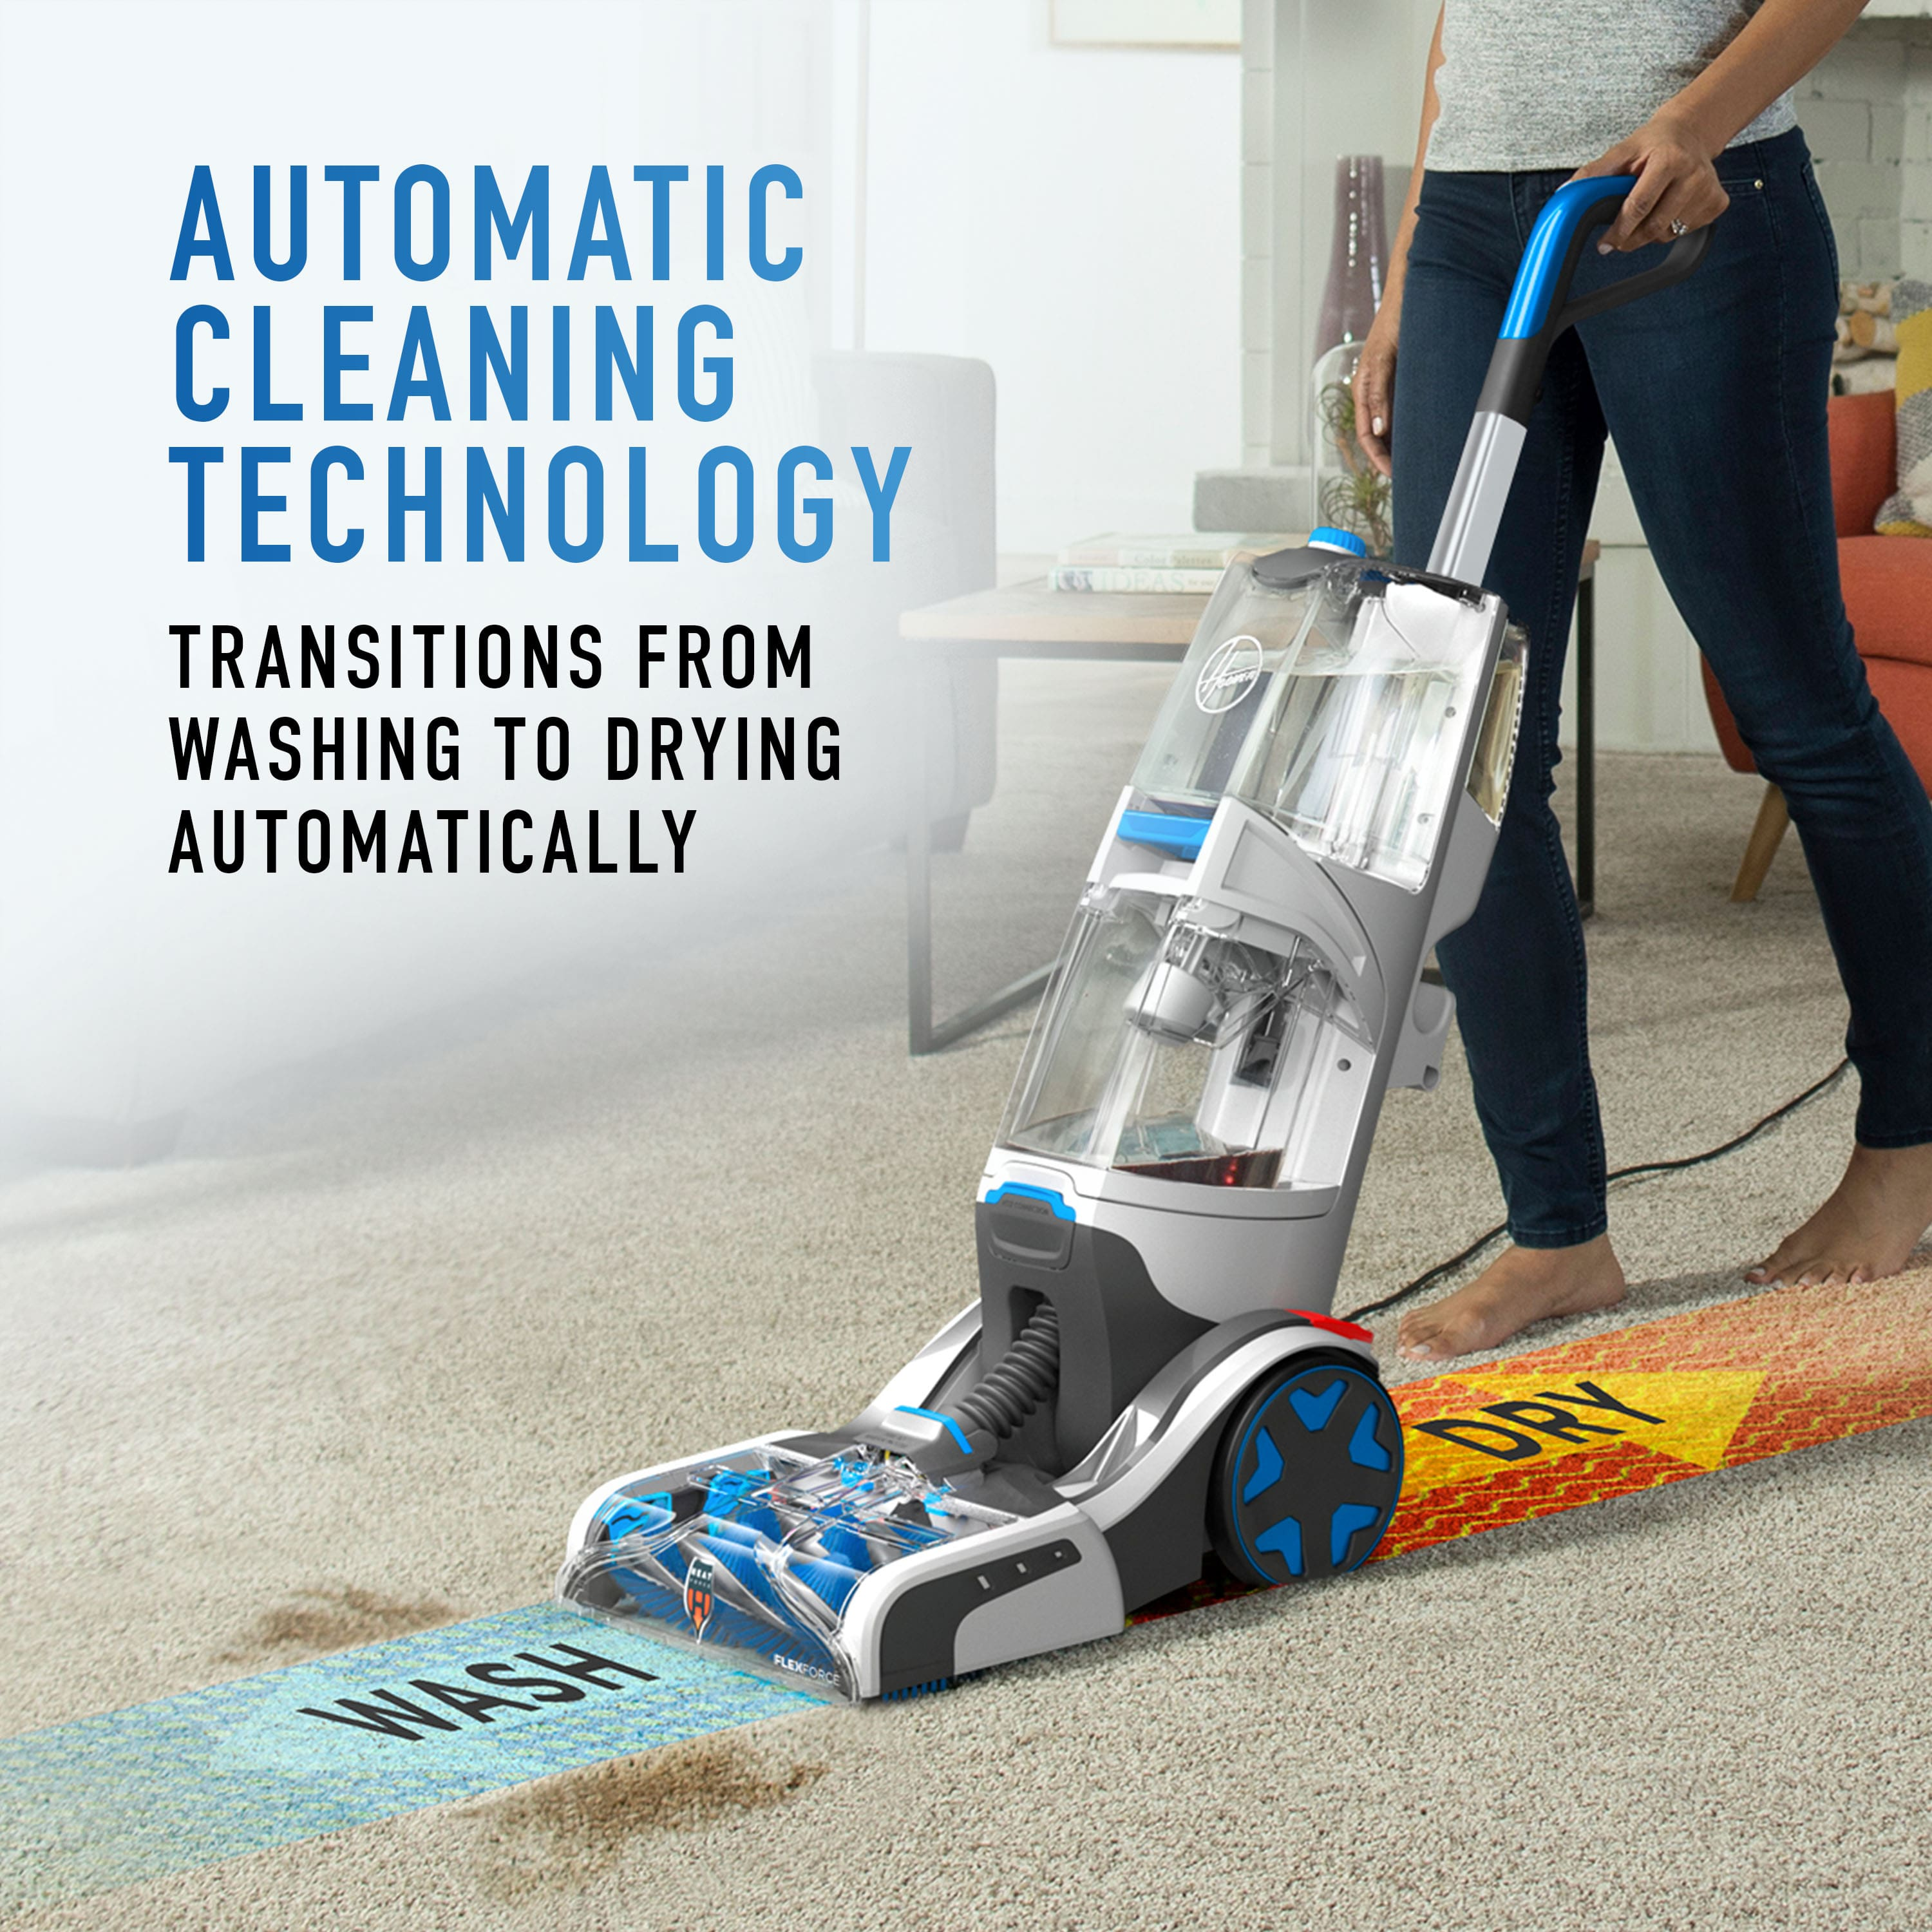 Hoover SmartWash Automatic Carpet Cleaner, FH52001 (Auto heat dry) lowest price $158.4